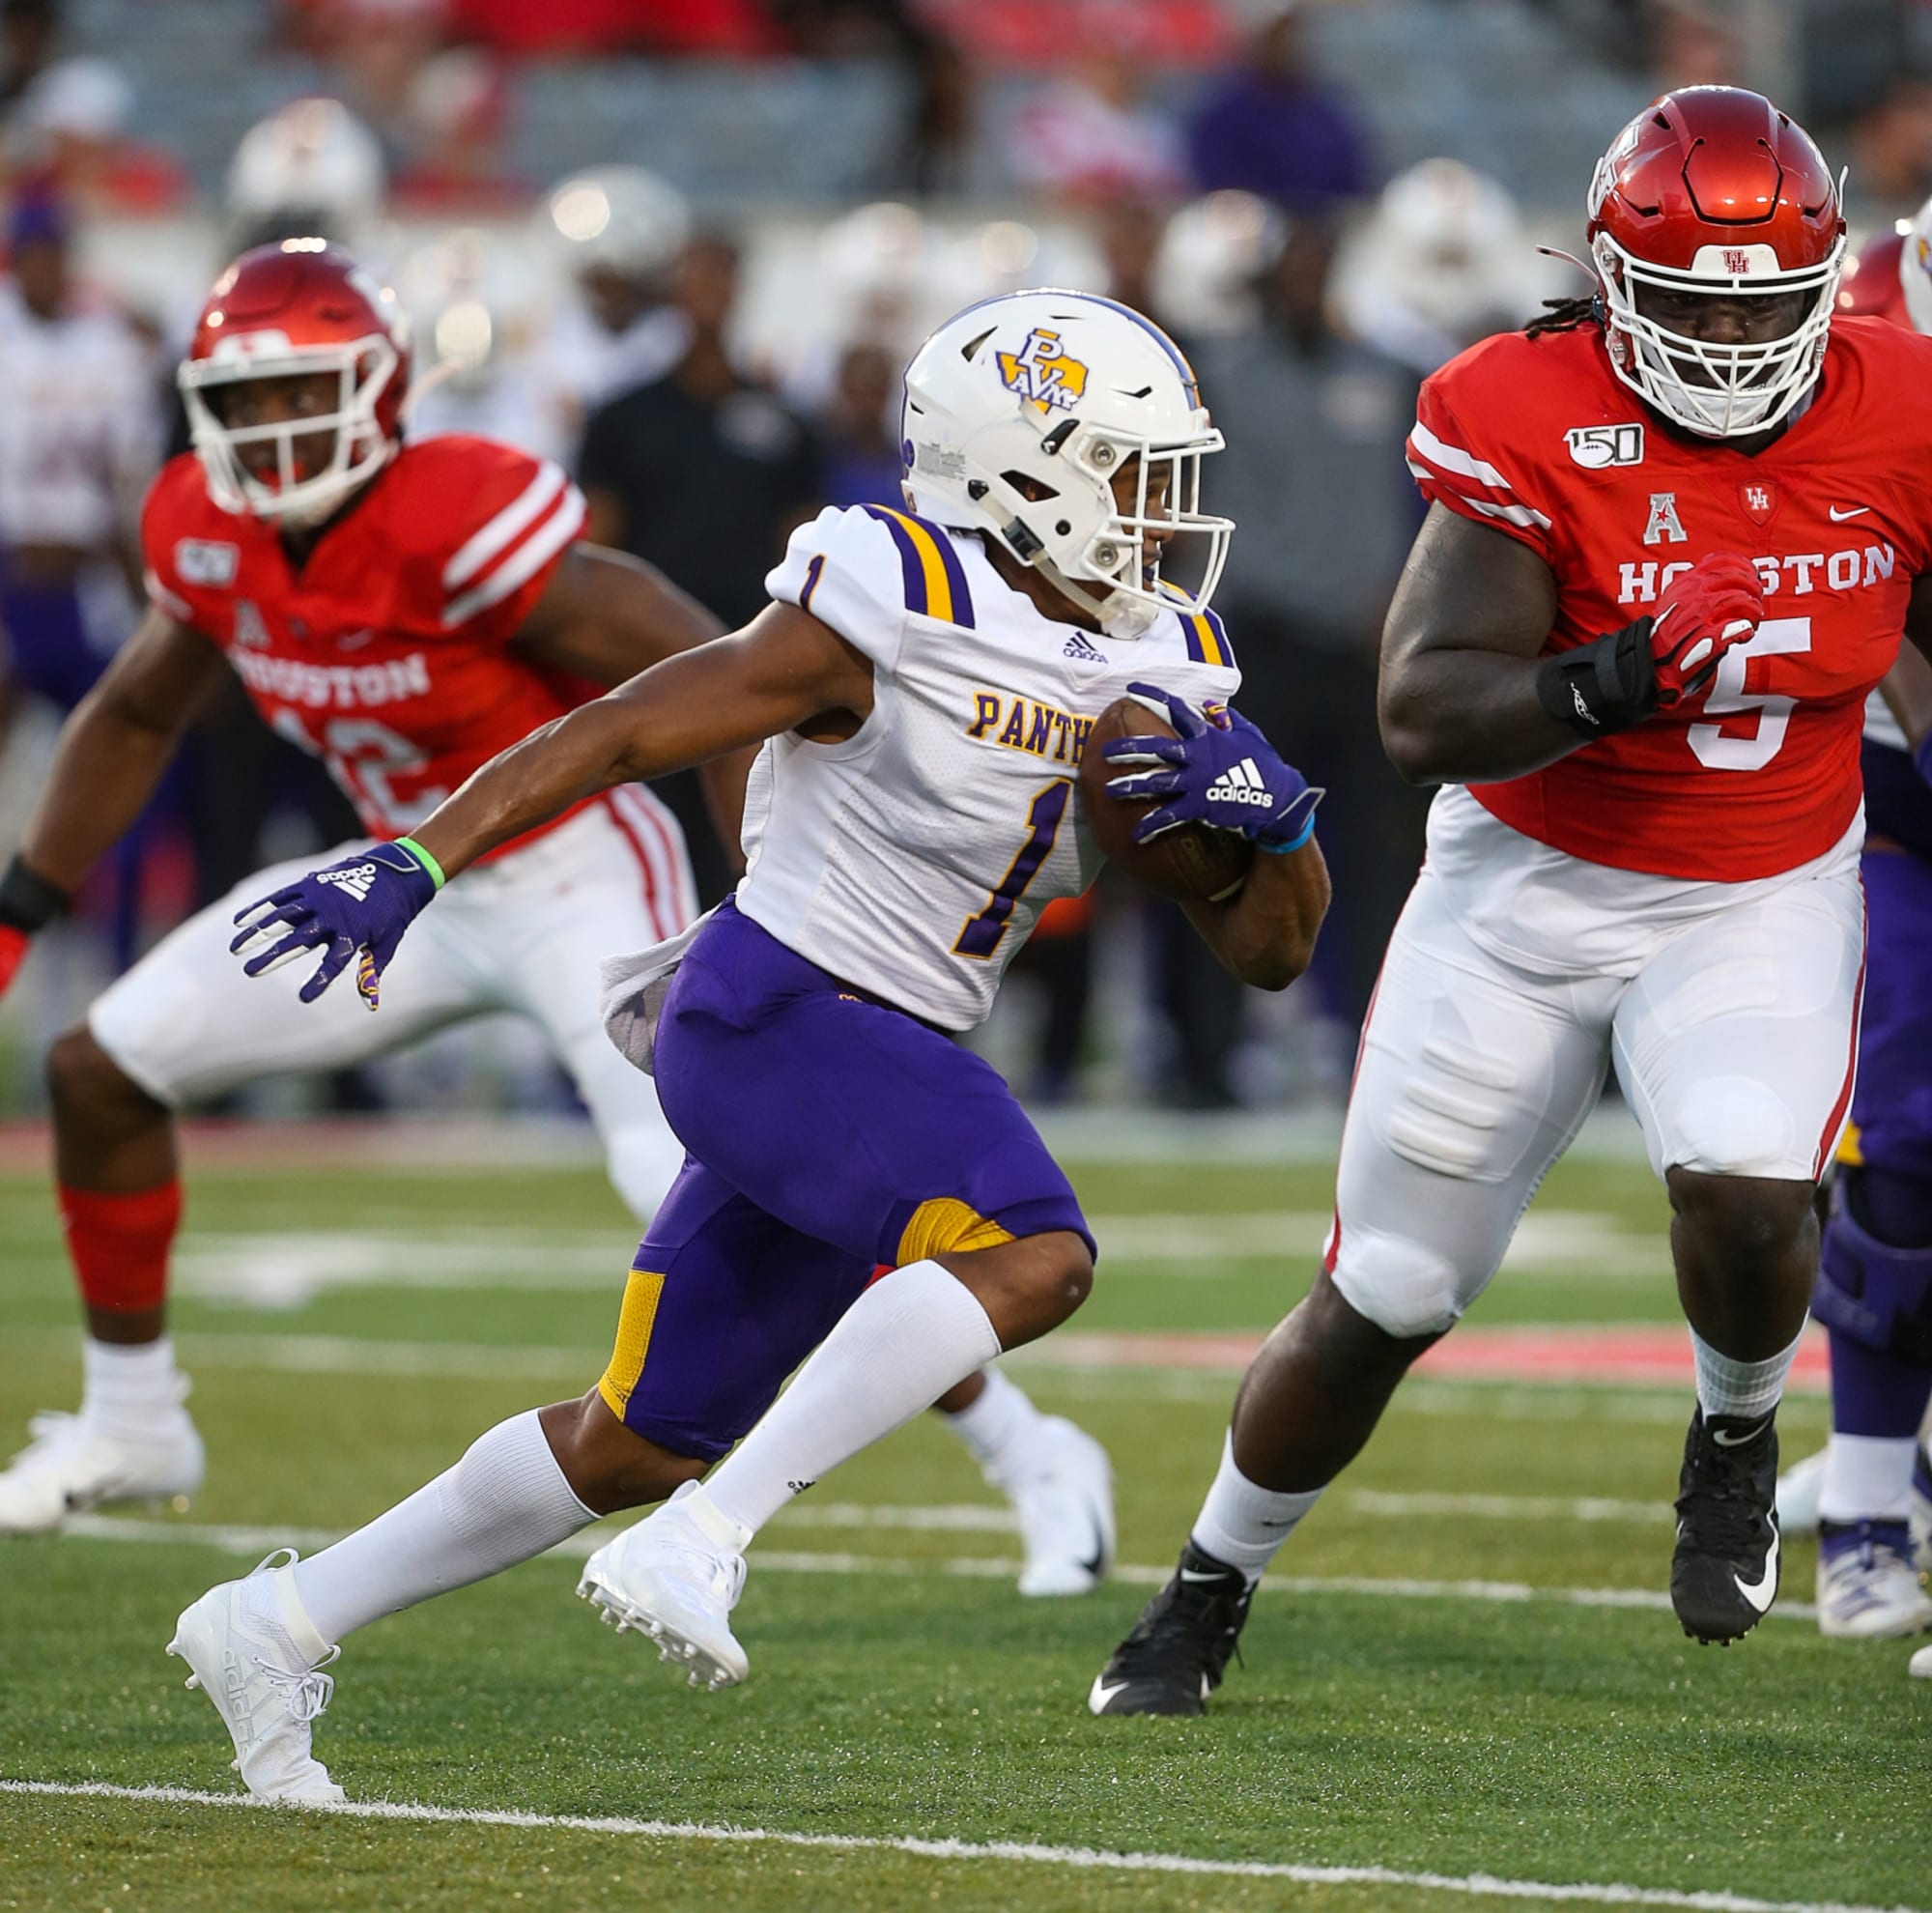 SWAC Football: Prediction for Prairie View A&M vs. Arkansas Pine-Bluff